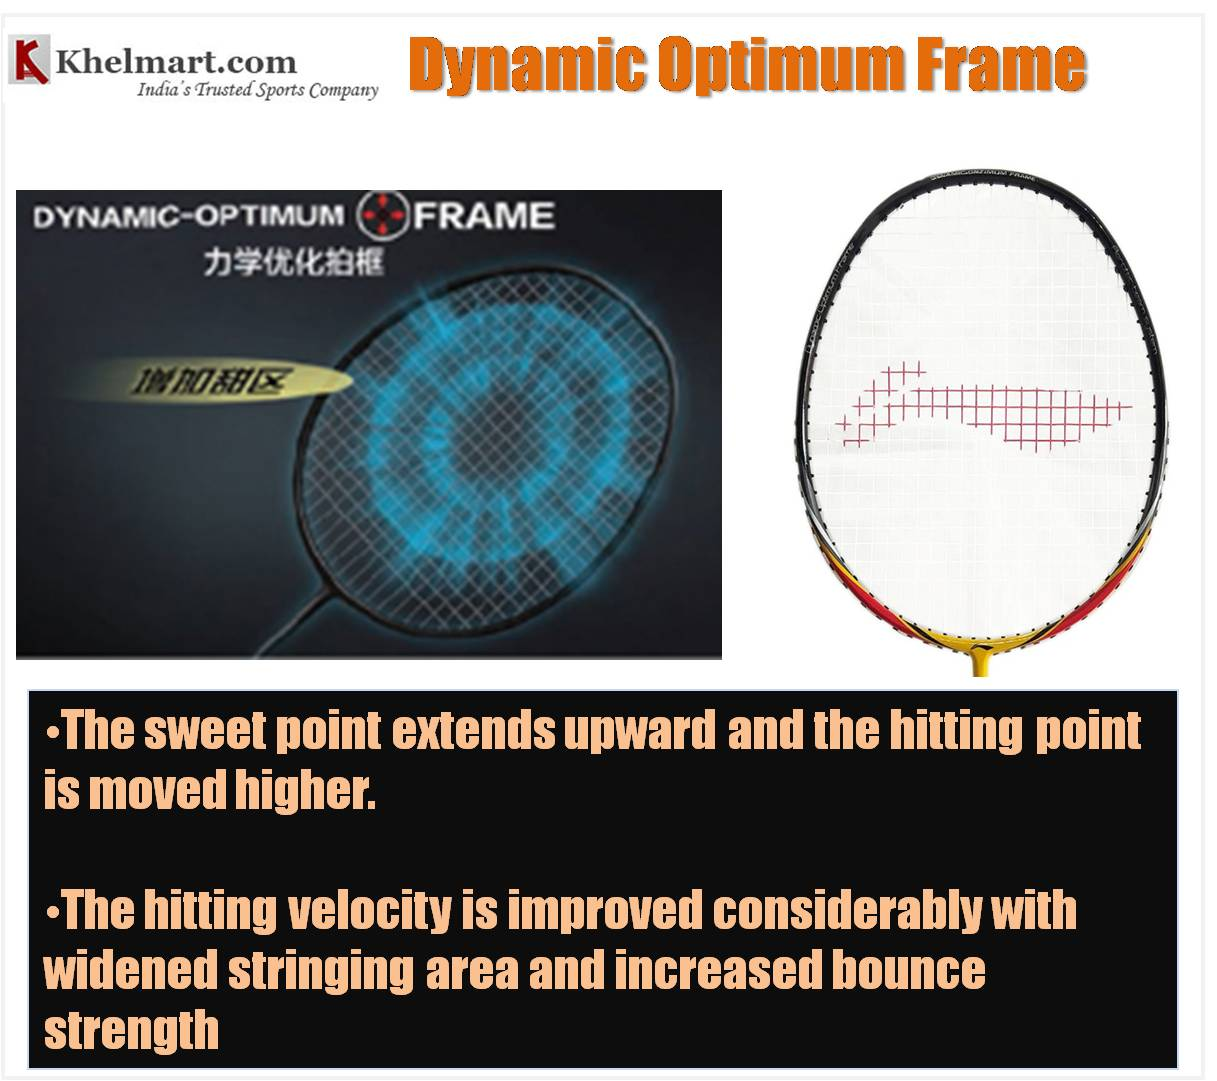 LI_Ling_Badminton_Rackets_Technology_Dynamic_Optimum_Frame.jpg